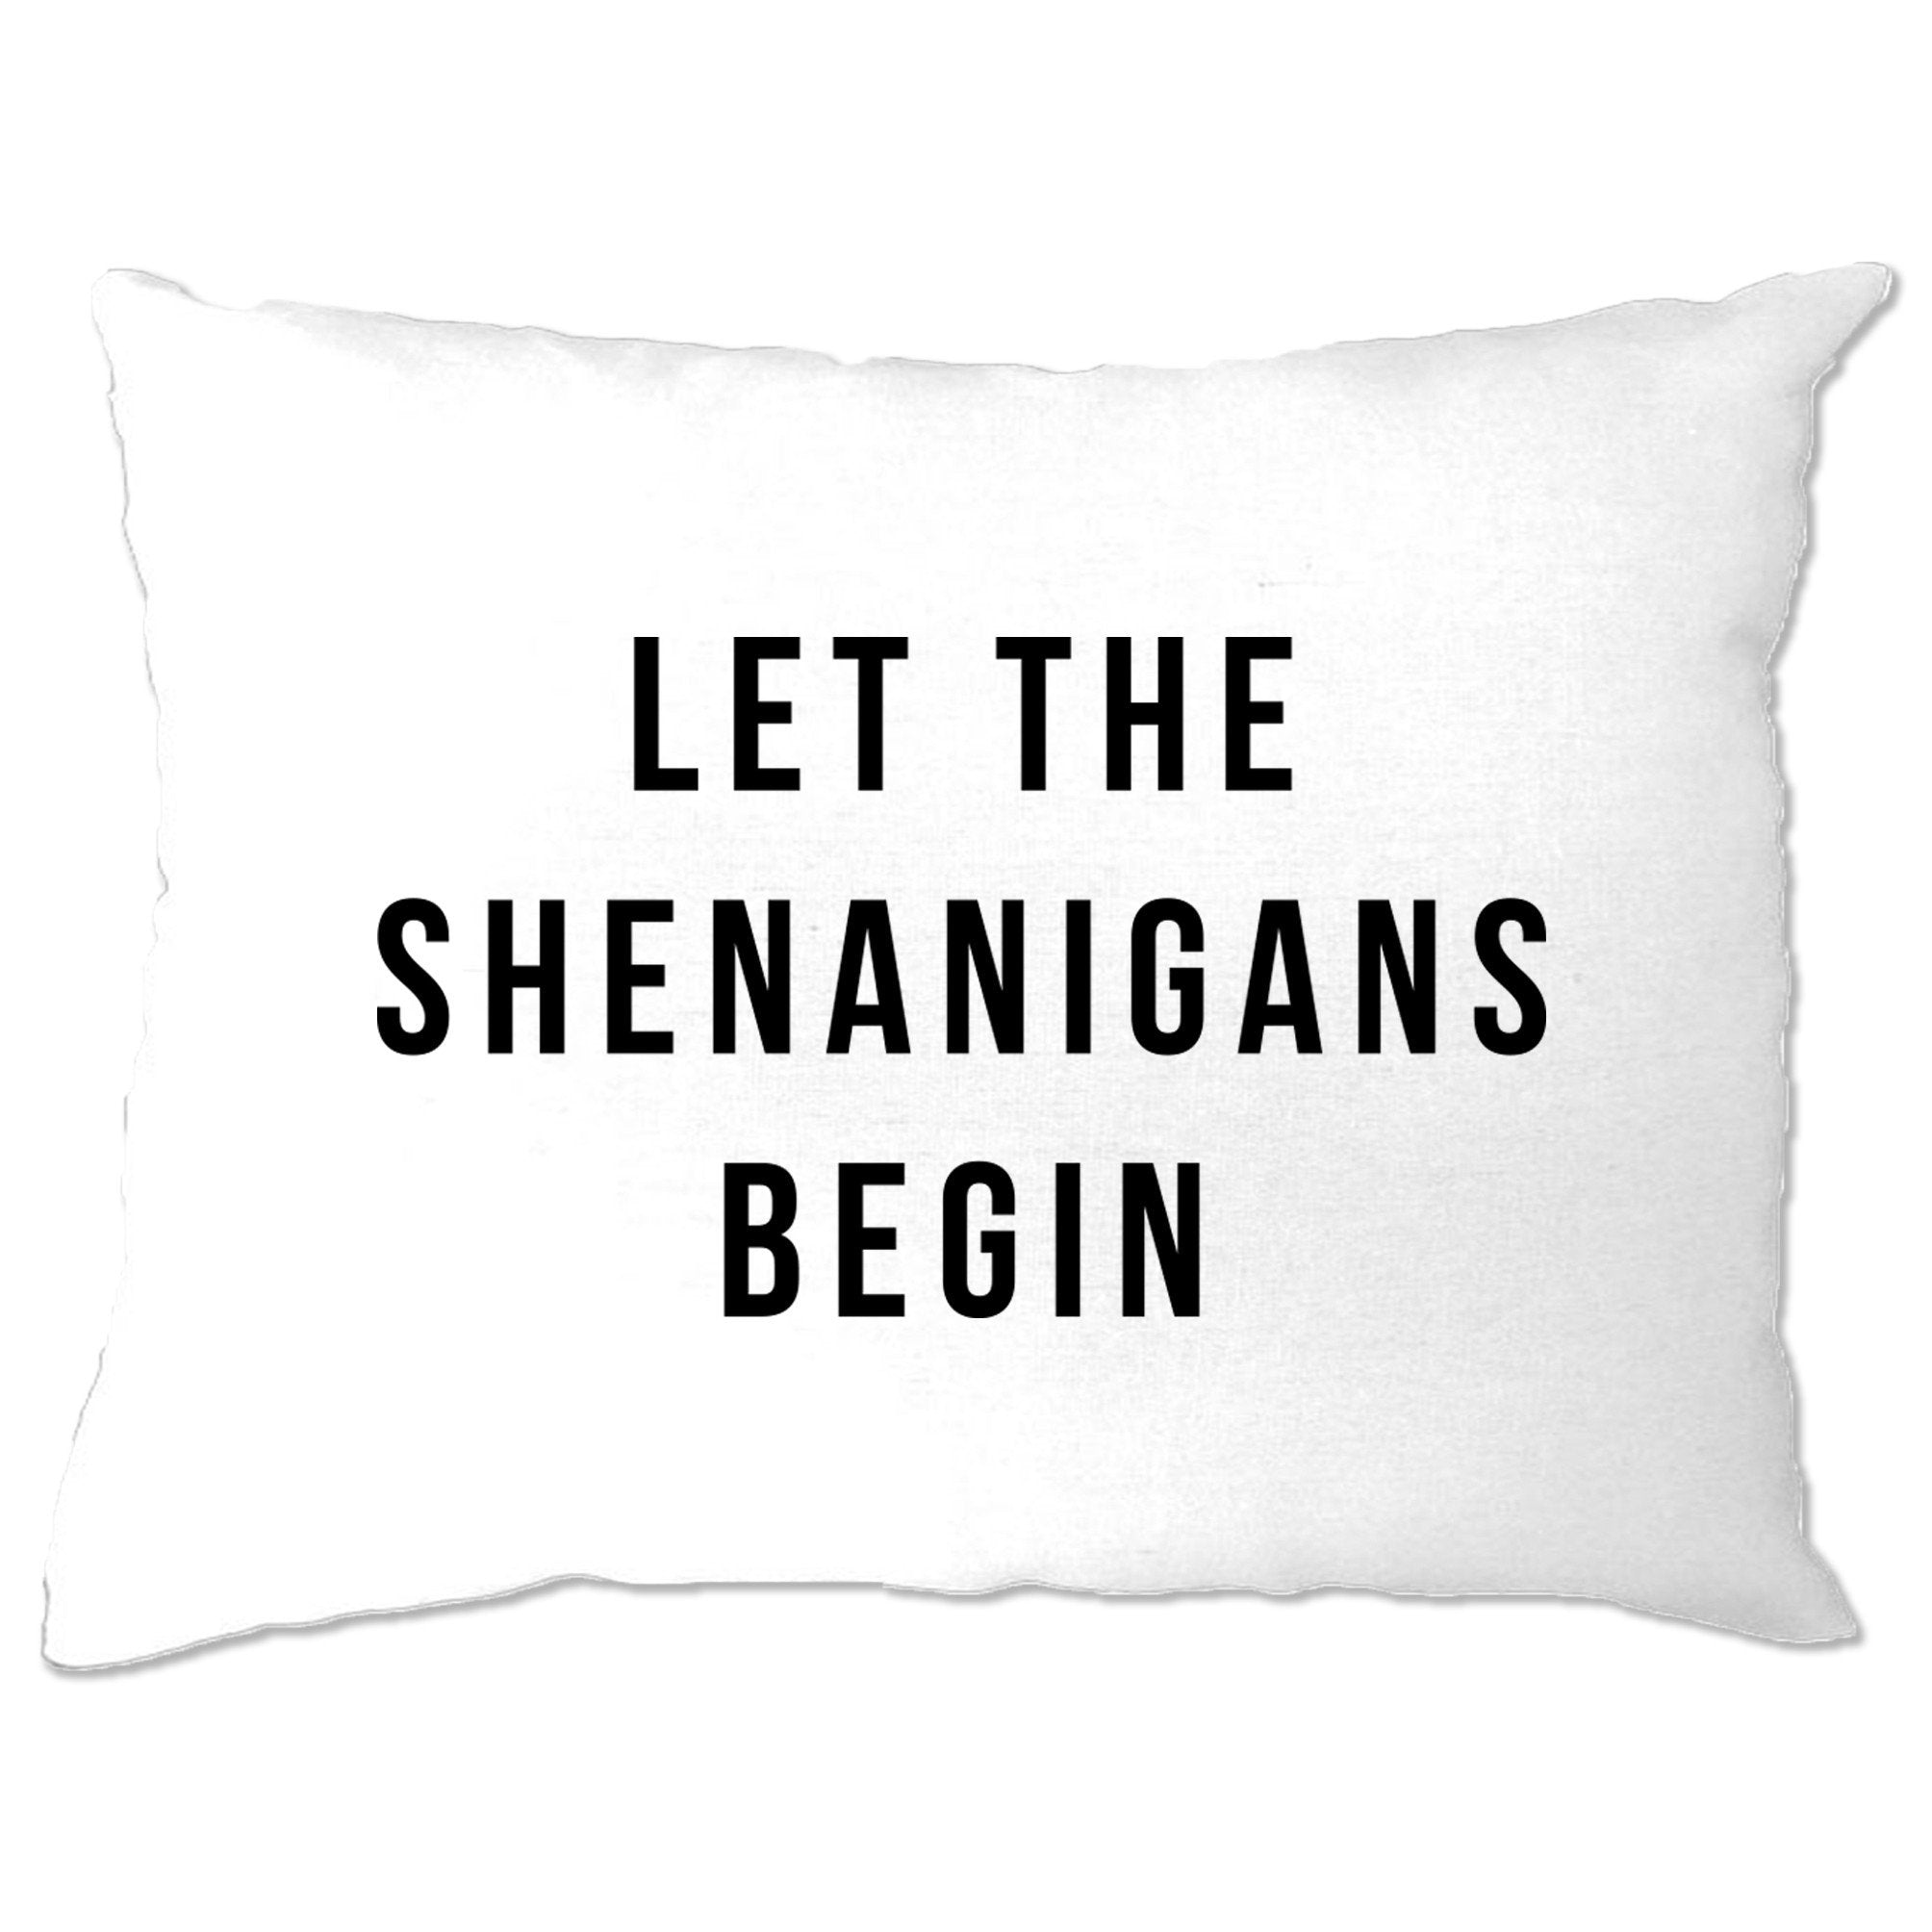 Novelty Pillow Case Let The Shenanigans Begin Slogan